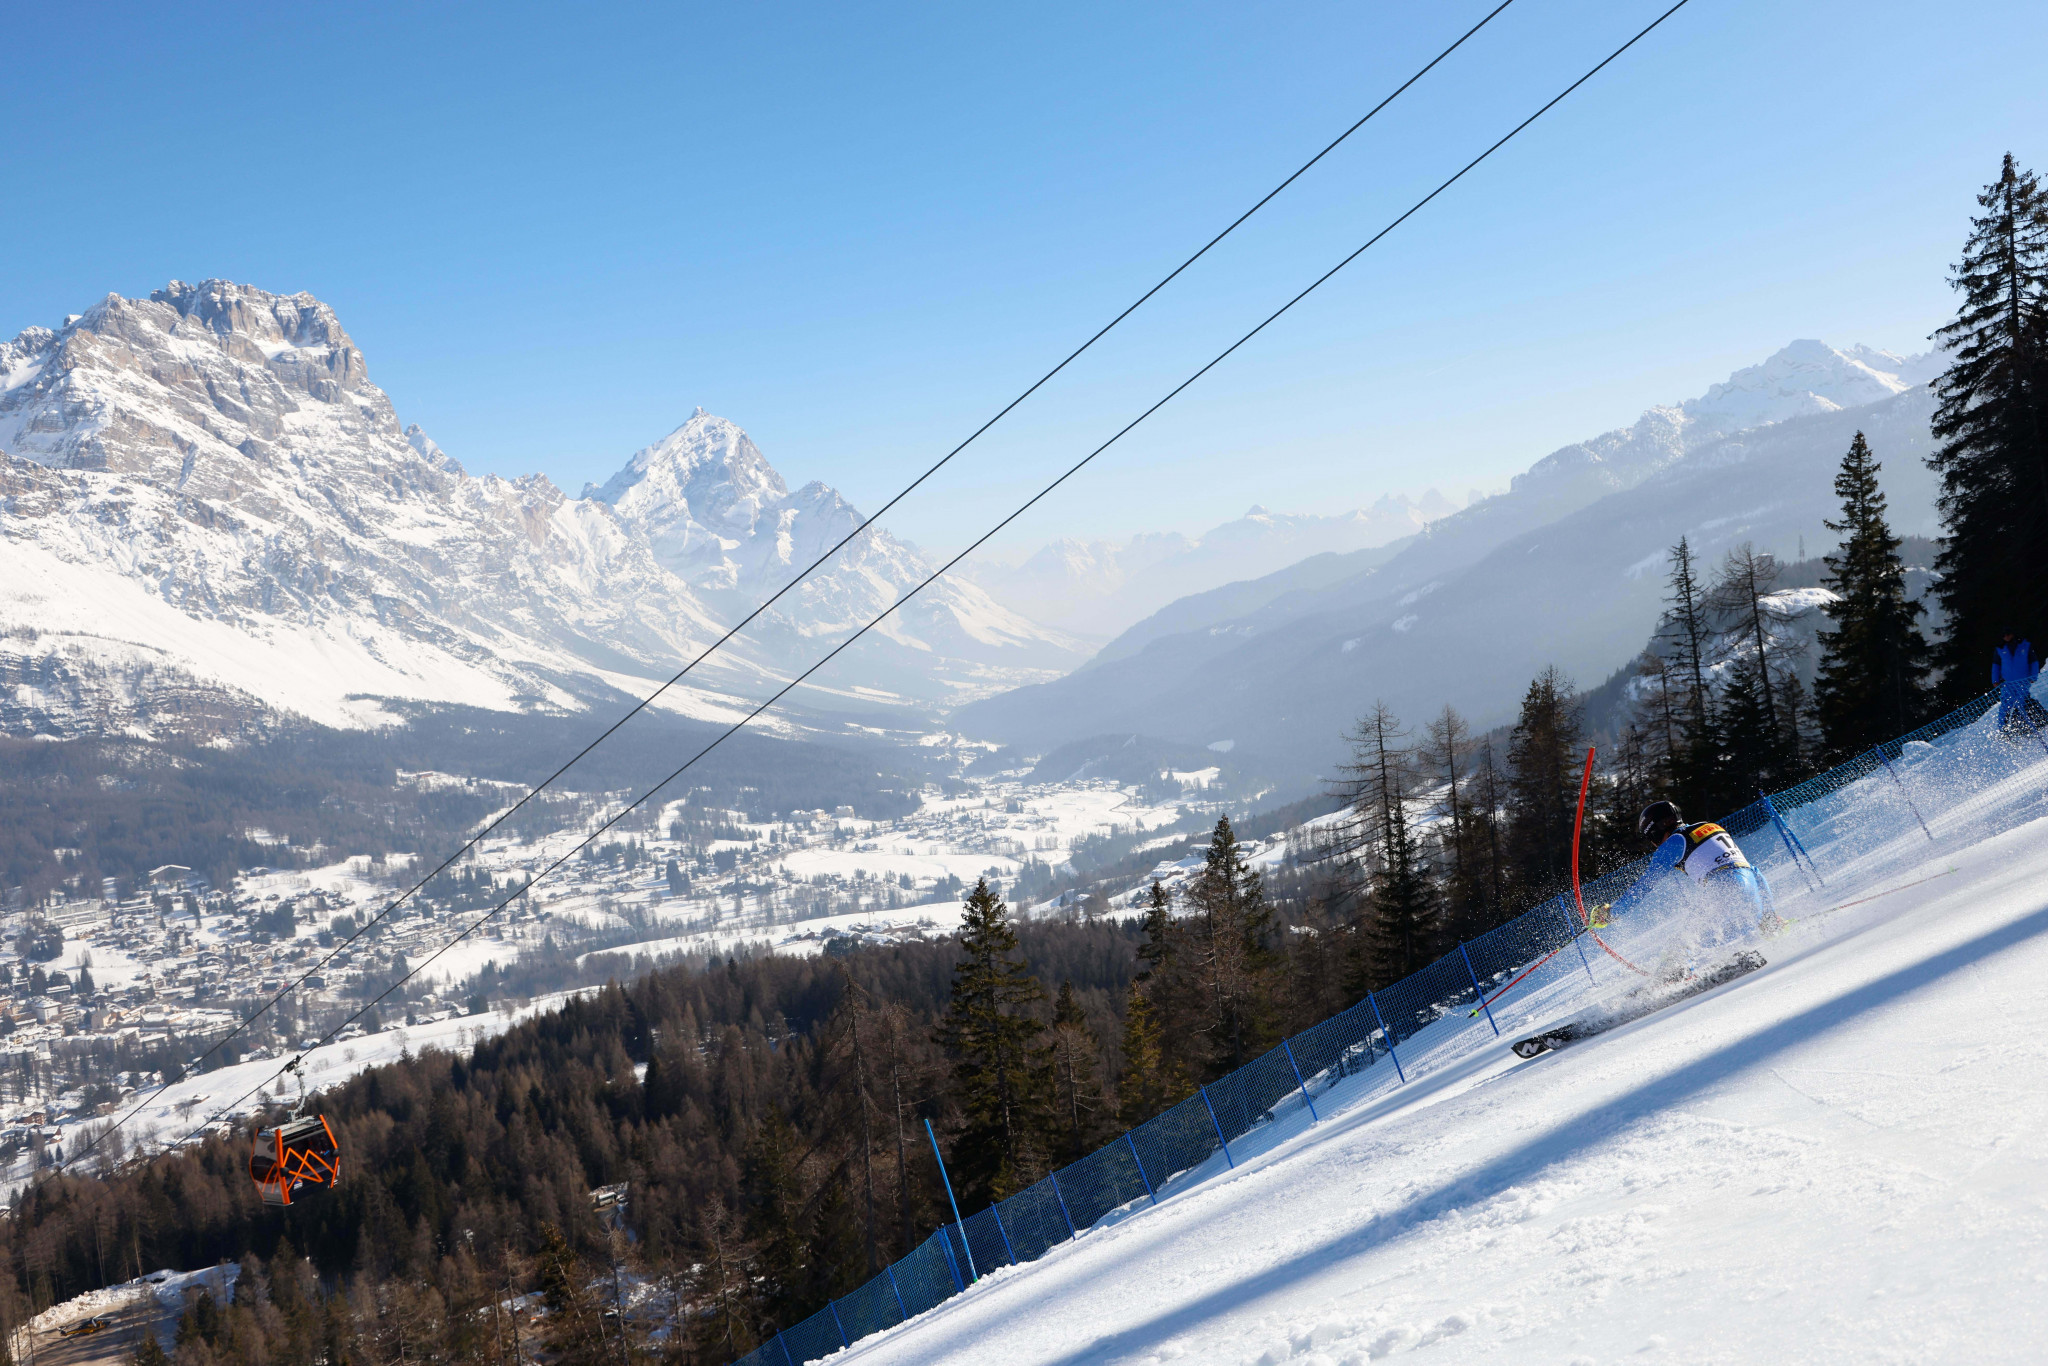 Poll shows strong local opposition to sliding track reconstruction plans in Cortina d'Ampezzo for 2026 Winter Olympics